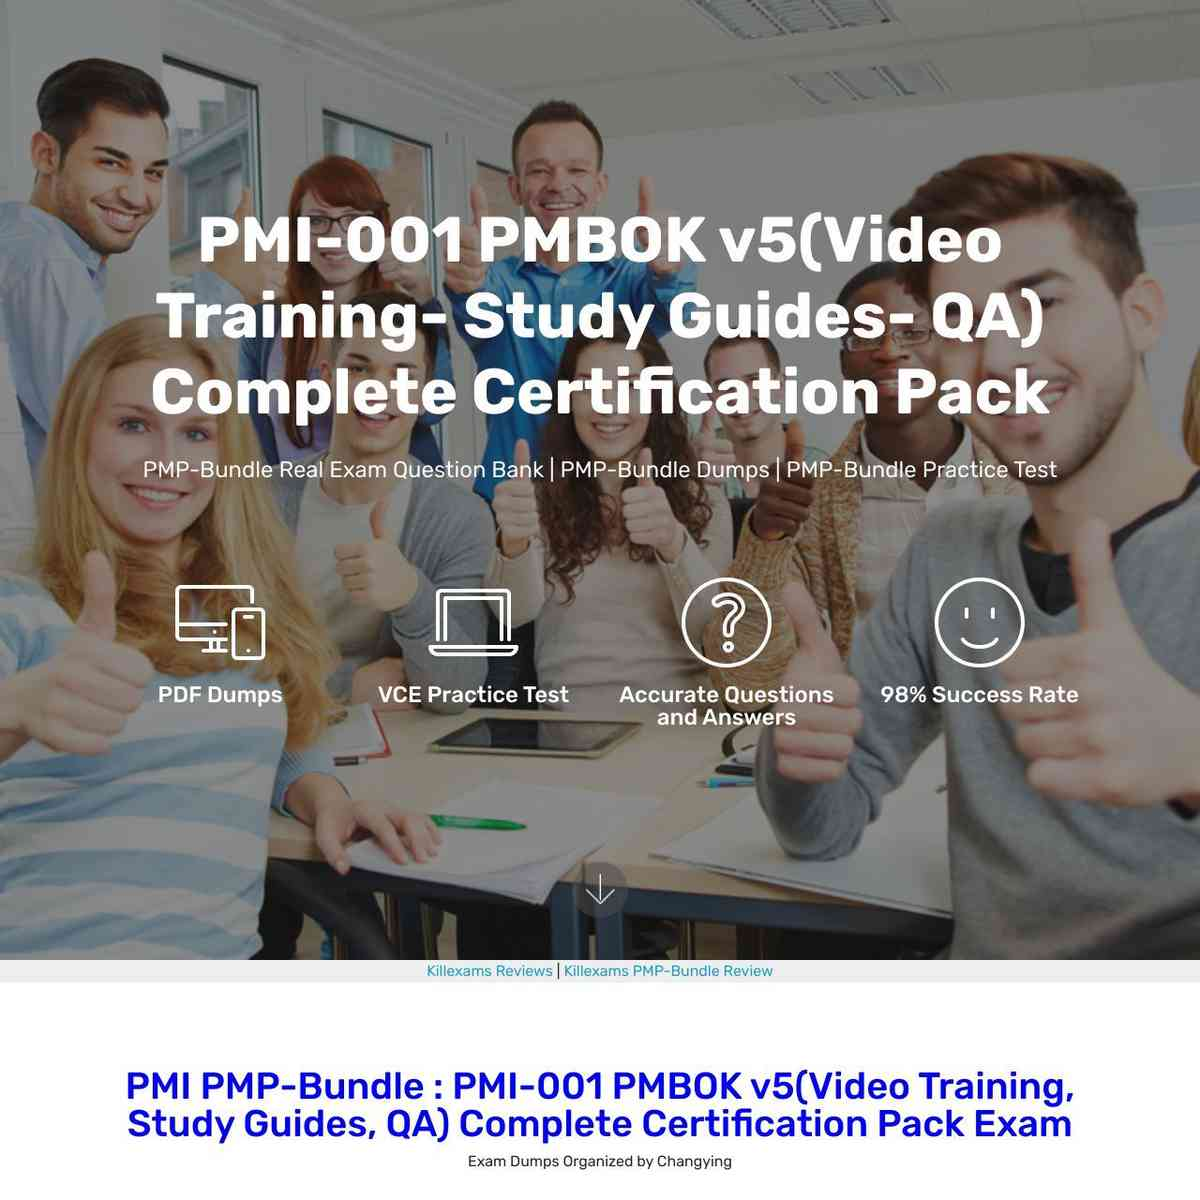 0day updated free PMP-Bundle Exam dumps with real exam Cheatsheet